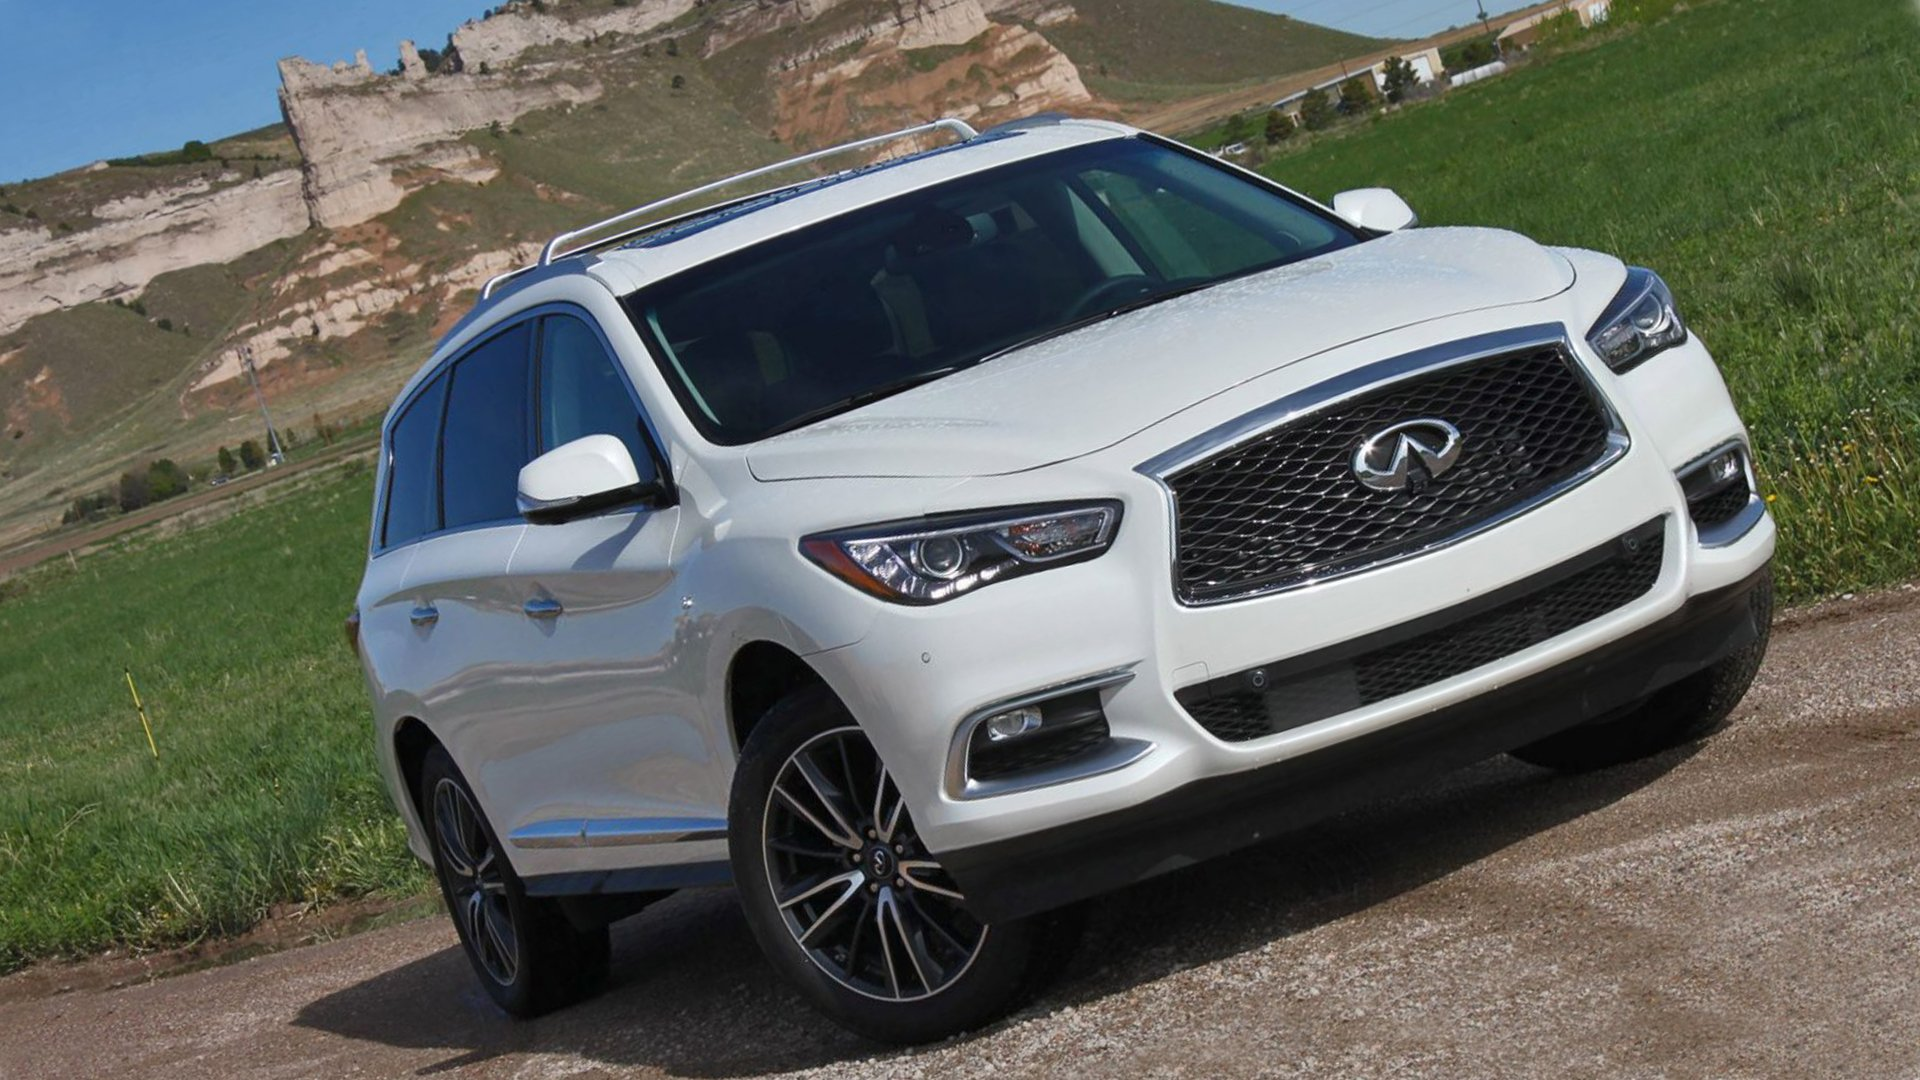 Price 2019 Infiniti QX60 HD